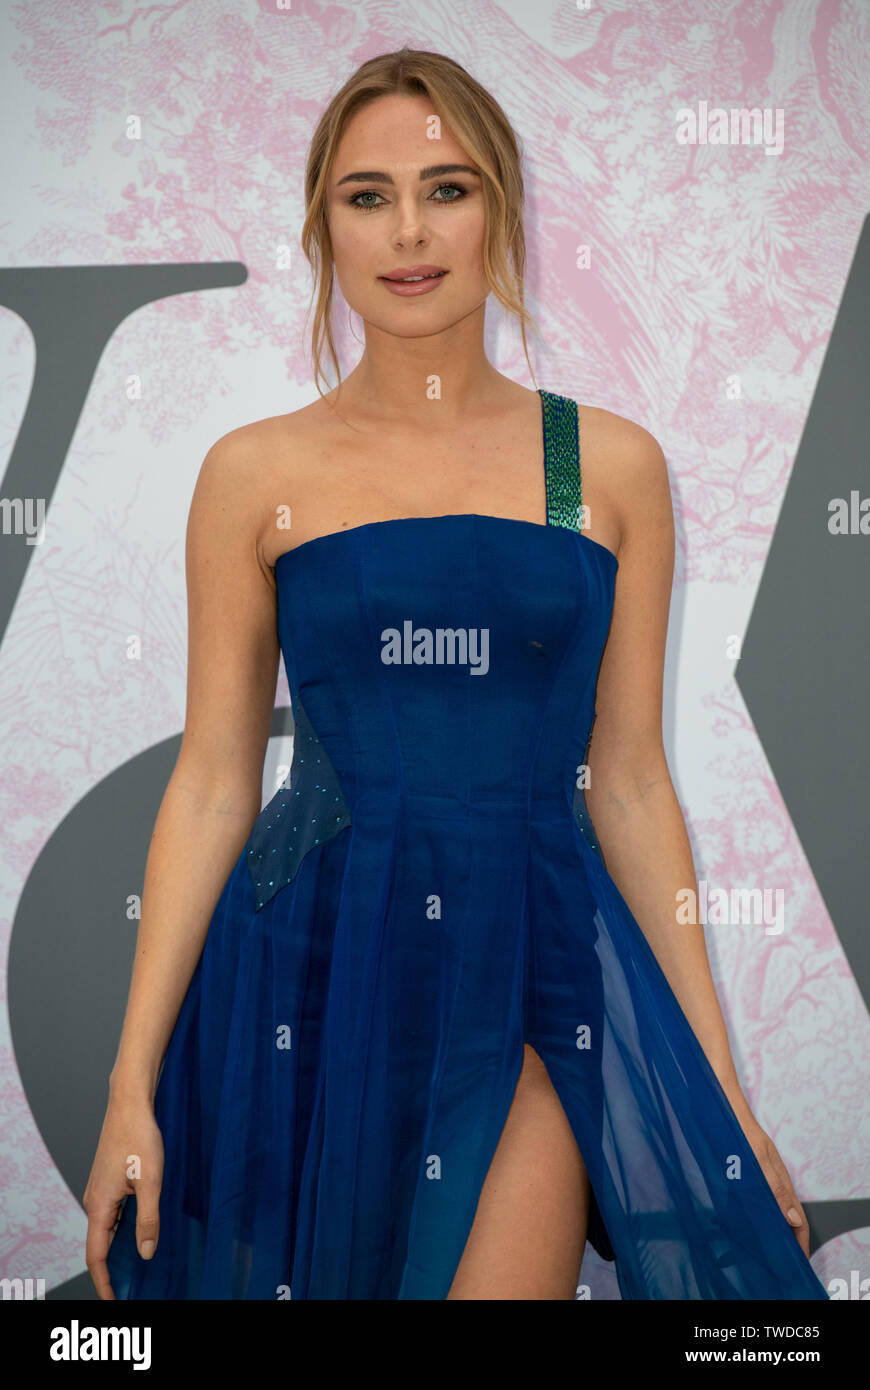 London, UK. 19th June, 2019. Kimberley Garner arrives at V&A - summer party, on 19 June 2019, London, UK Credit: Picture Capital/Alamy Live News - Stock Image